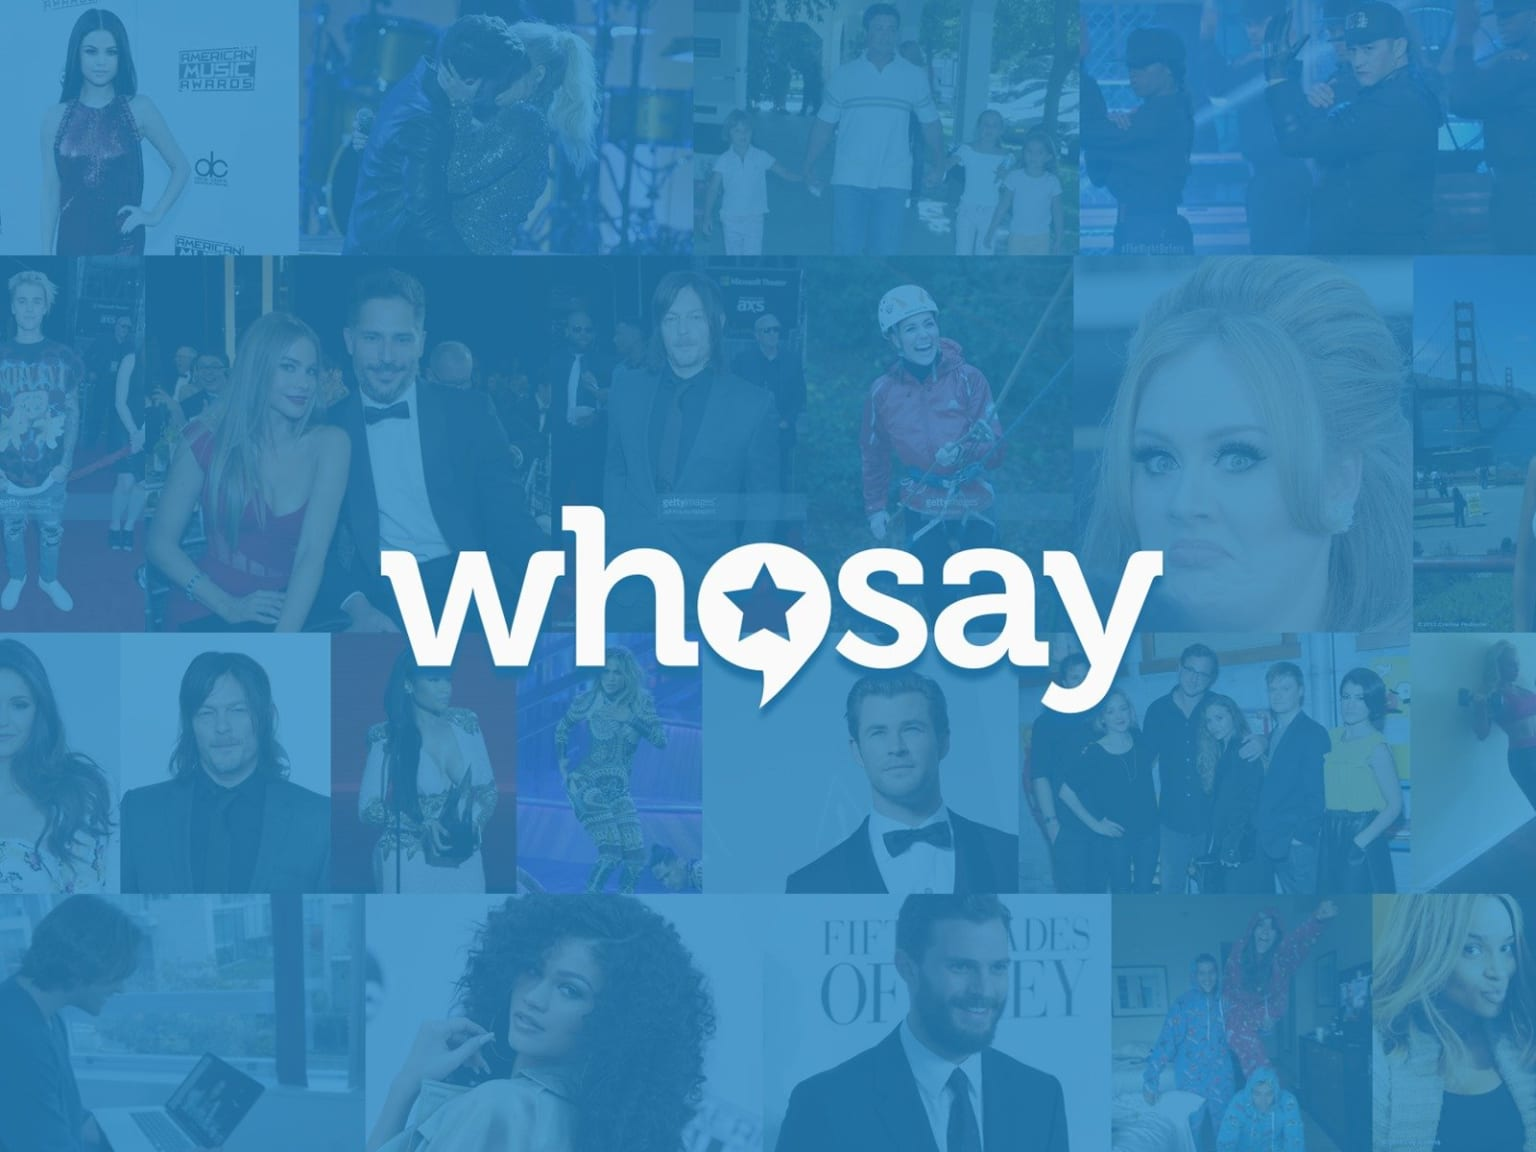 Whosay Mobile Apps